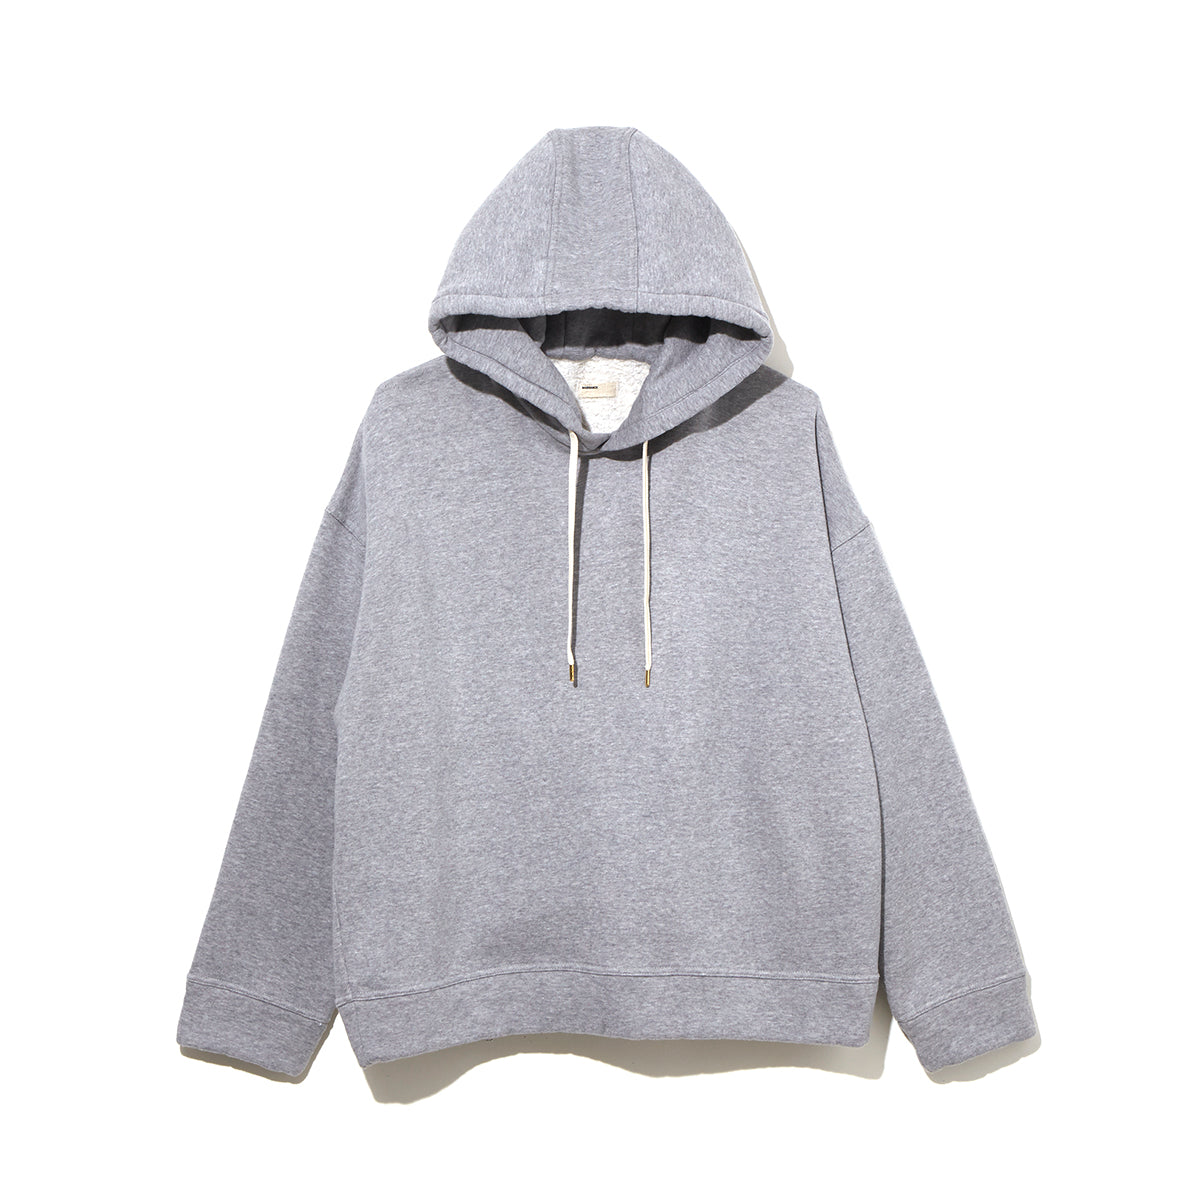 SHEEP FLEECE PULLOVER HOODIE / GRAY (21A-NSA-CS-05)